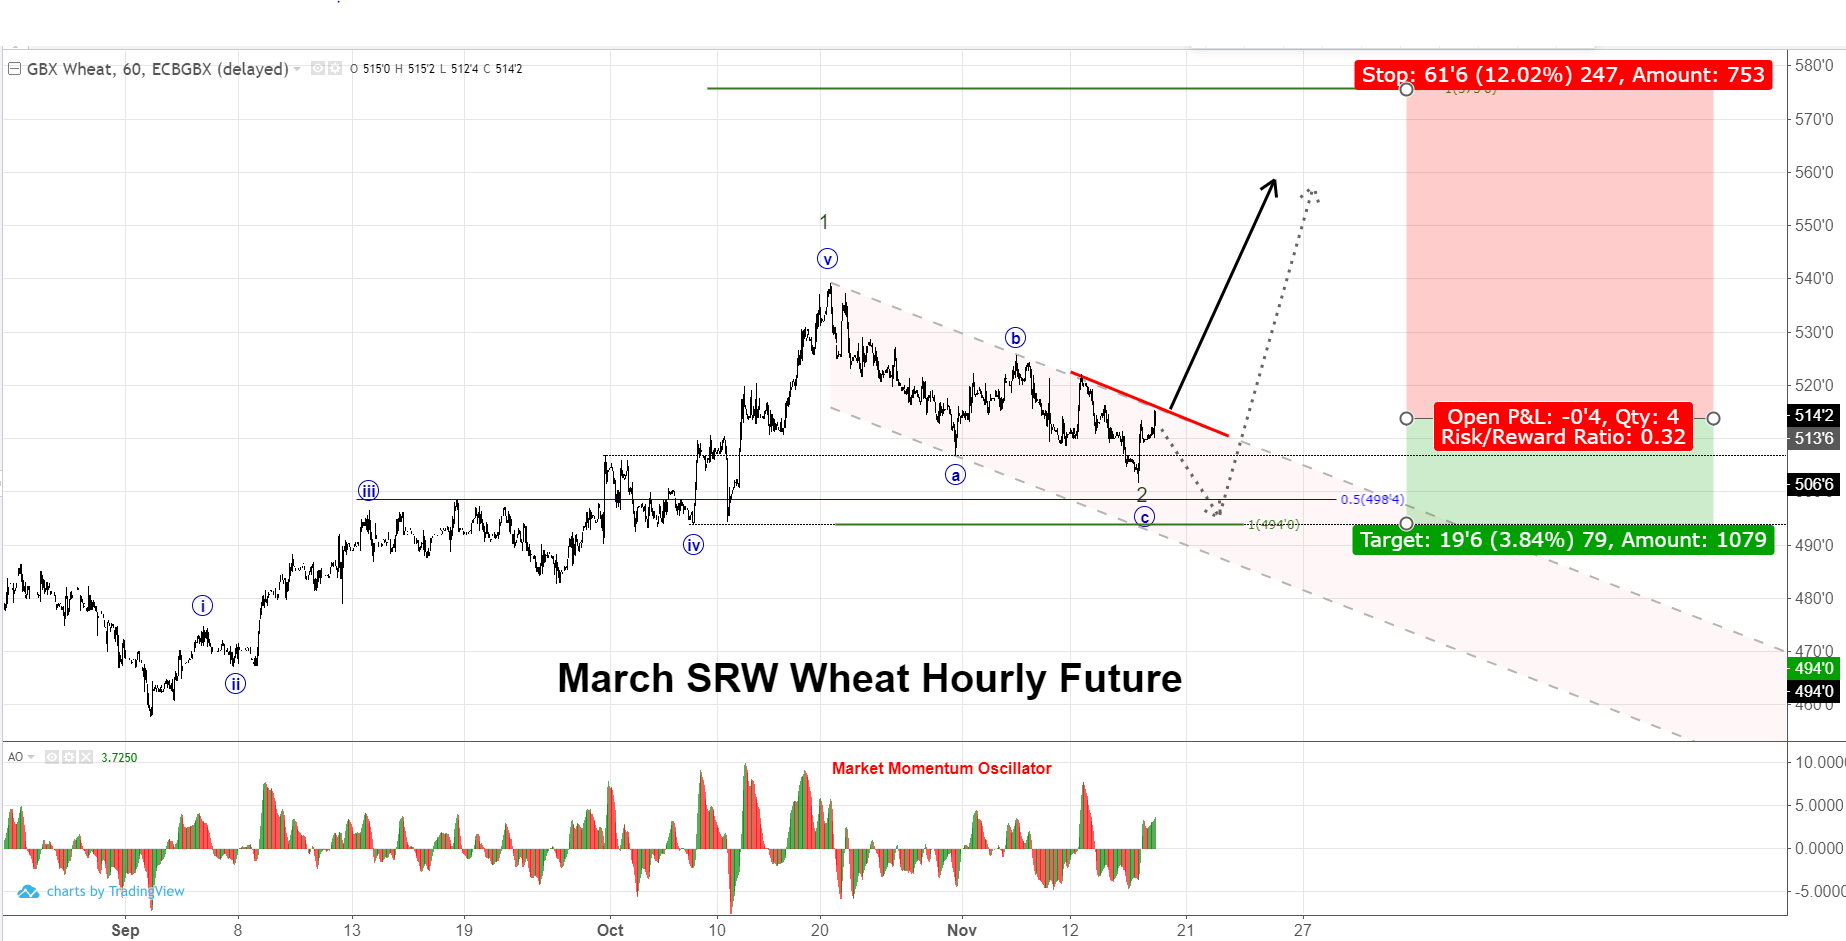 March SRW Wheat Hourly Chart